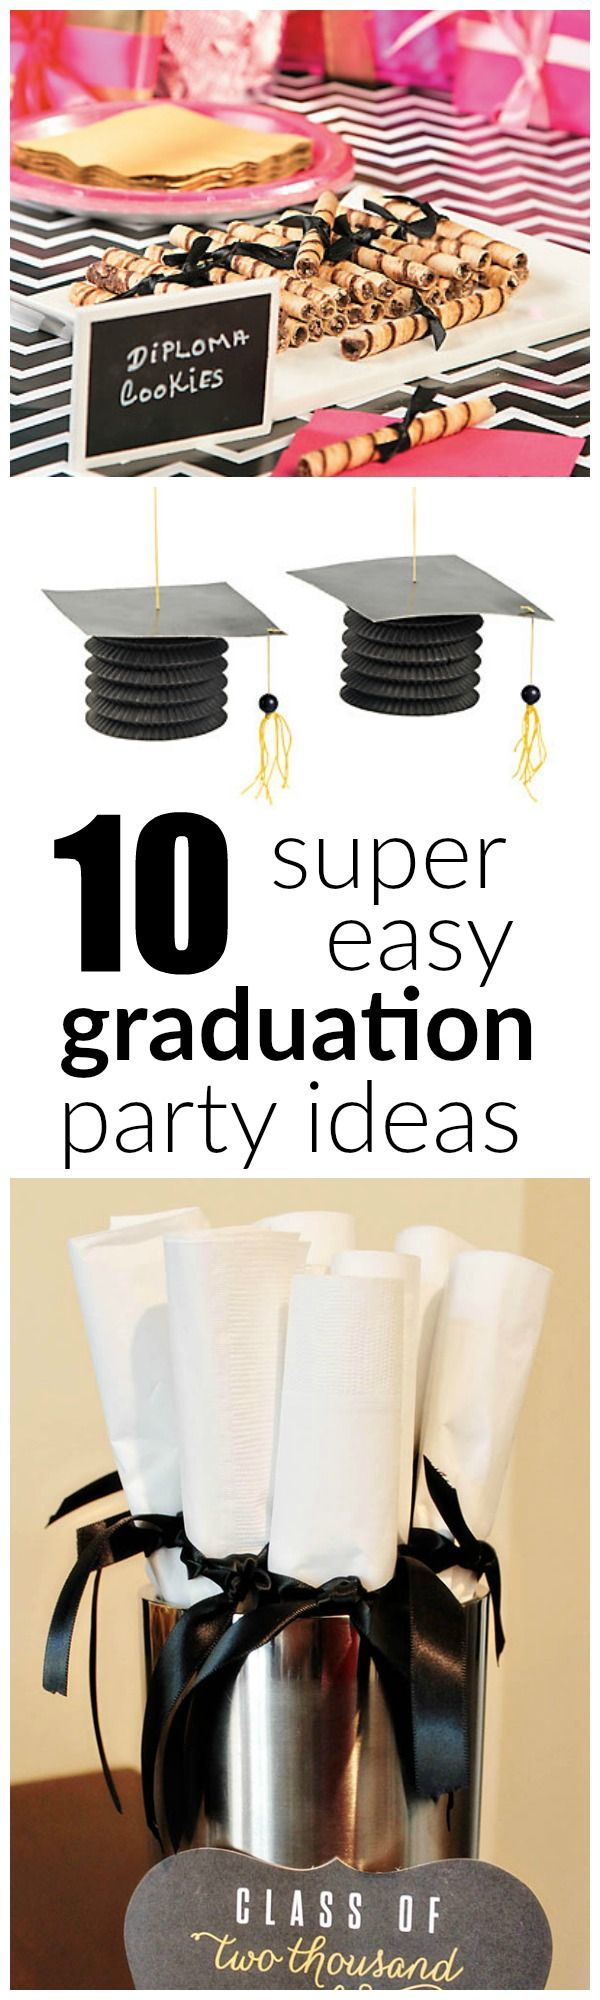 sample open house graduation party invitations%0A Graduation Party Ideas